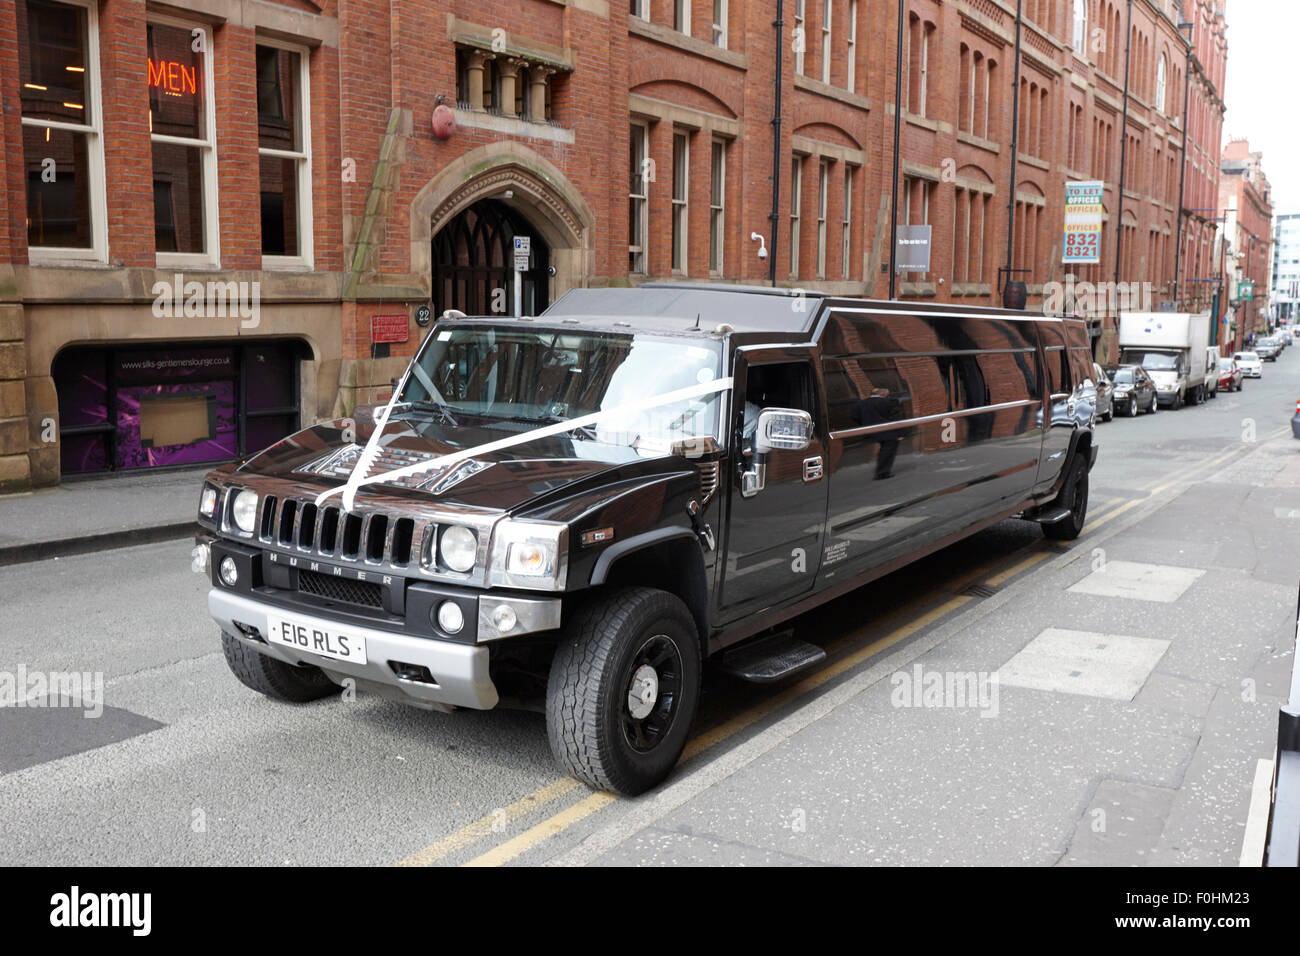 stretch hummer limo as a wedding car Manchester England UK - Stock Image